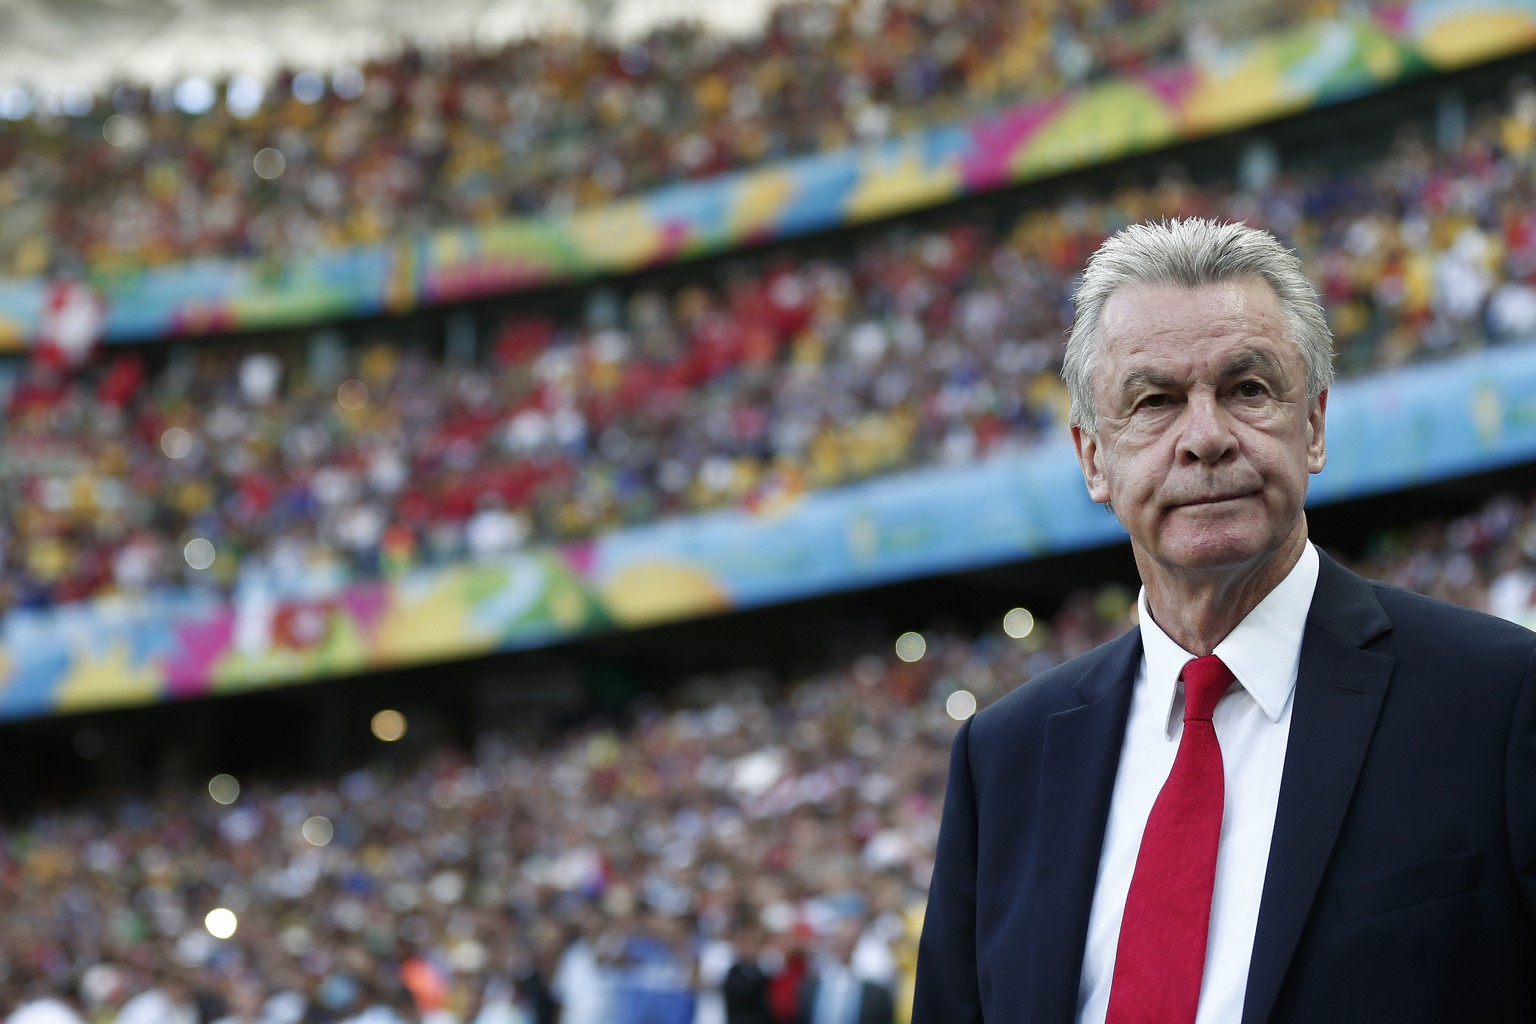 Swiss head coach Ottmar Hitzfeld looks on prior to the group E preliminary round match between Switzerland and France in the Arena Fonte Nova in Salvador, Brazil, Friday, June 20, 2014. (KEYSTONE/Peter Klaunzer)